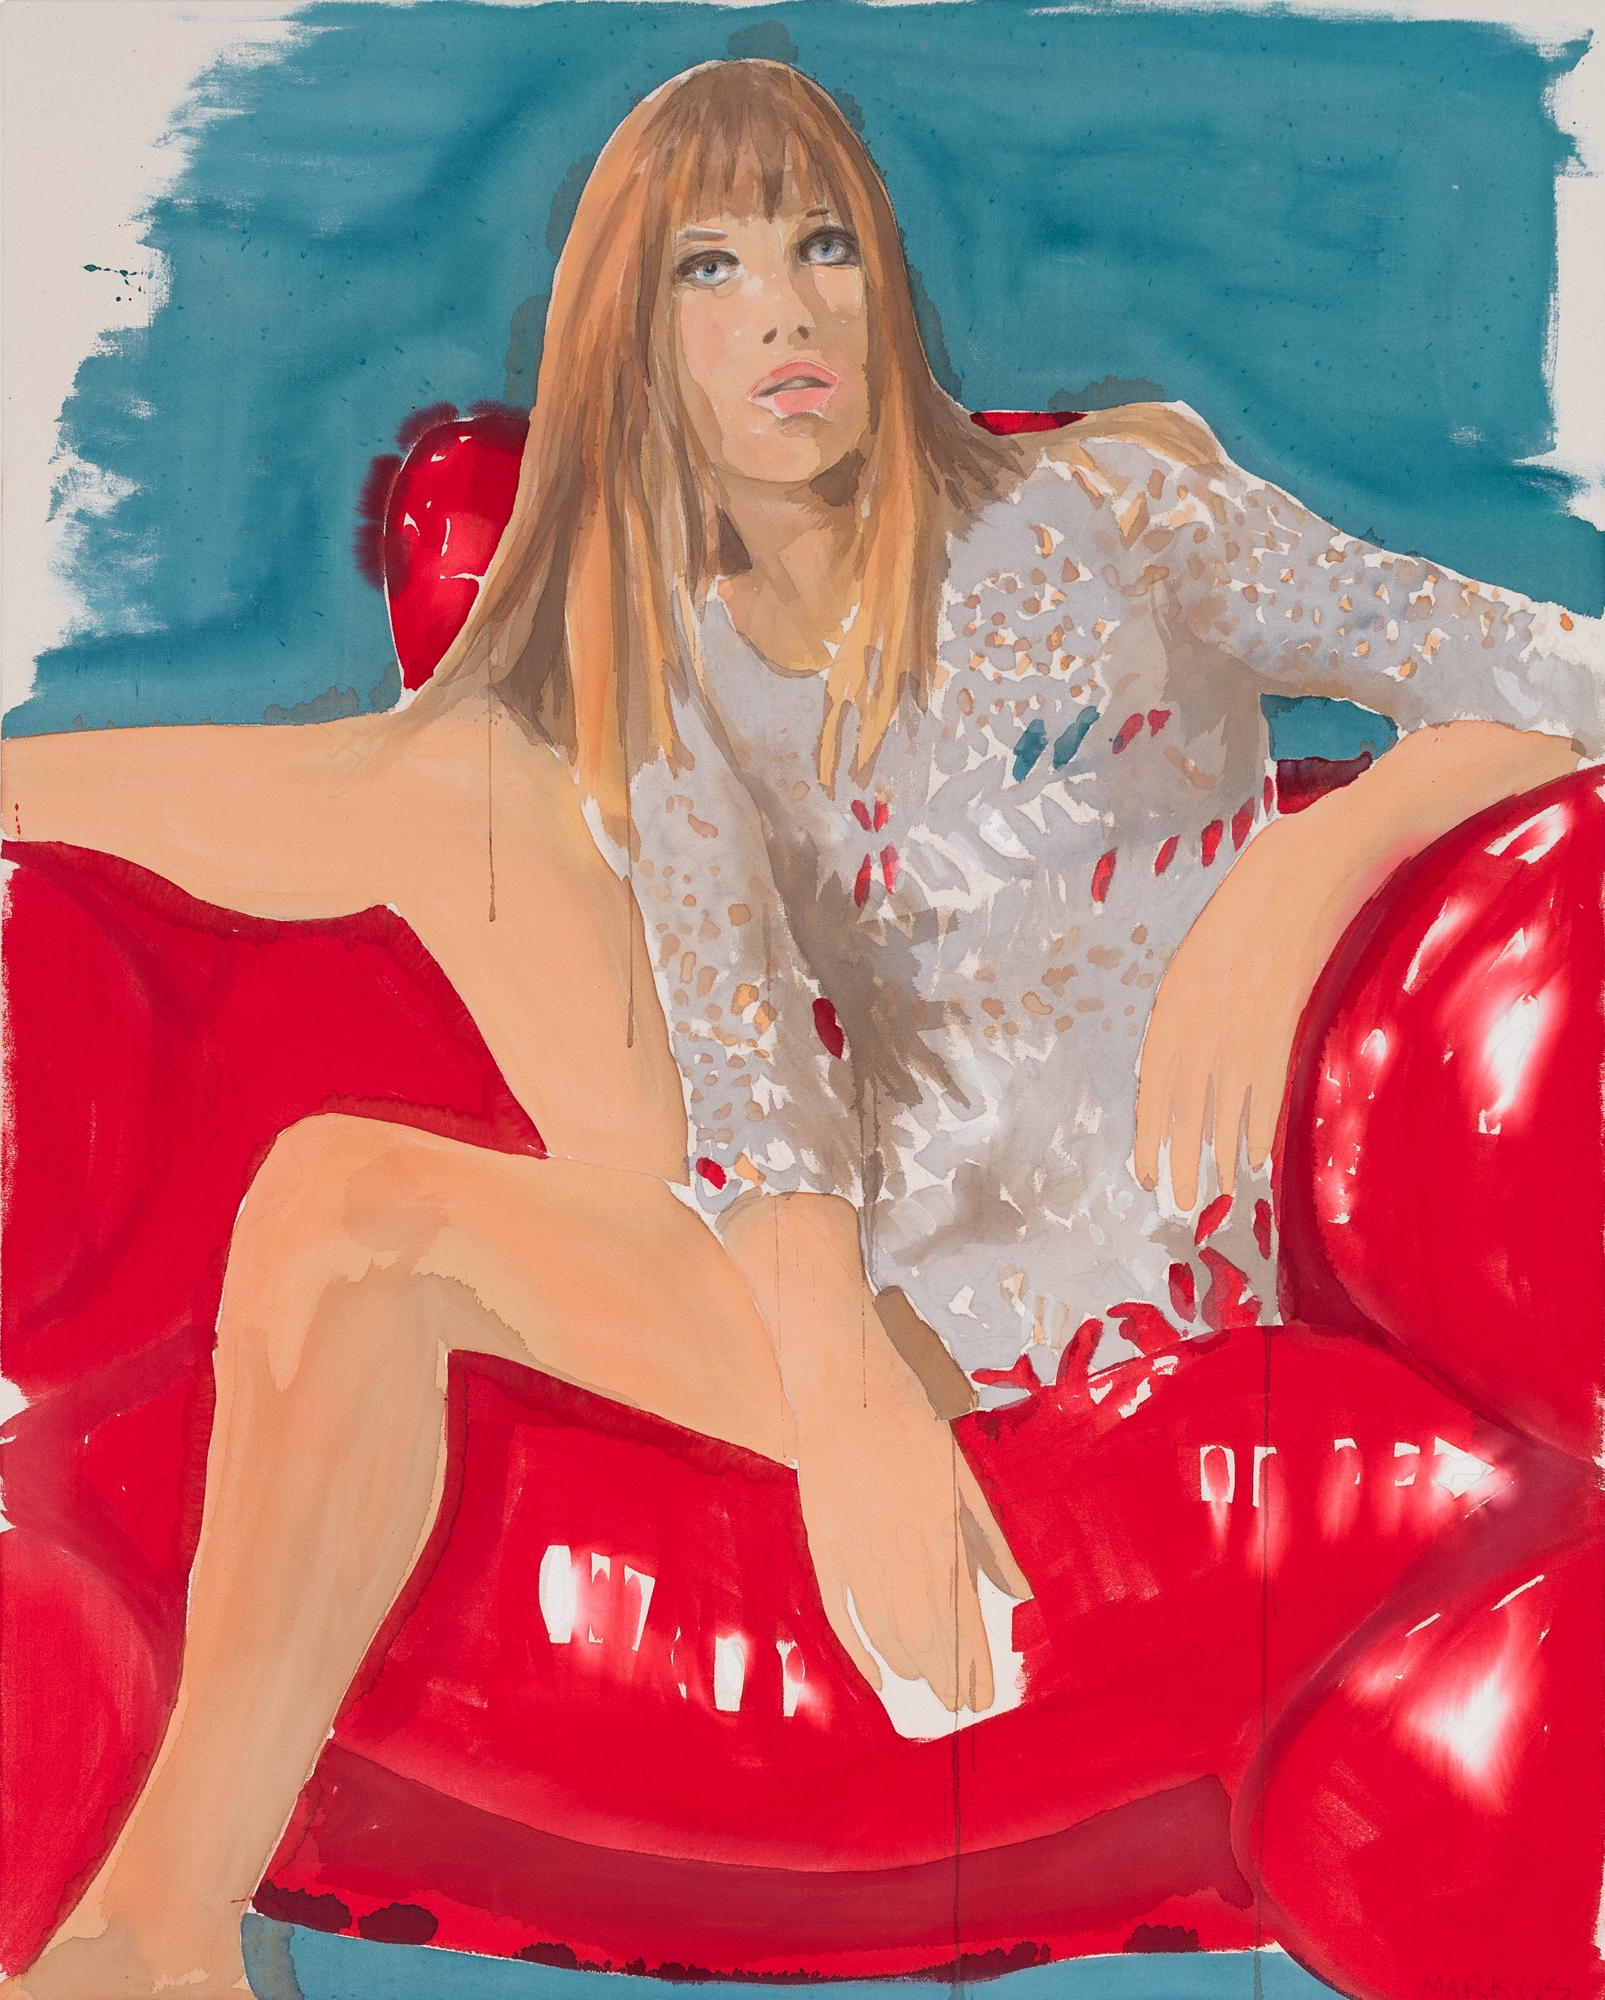 LM15_Jane-Birkin-red-chair-hi_crop